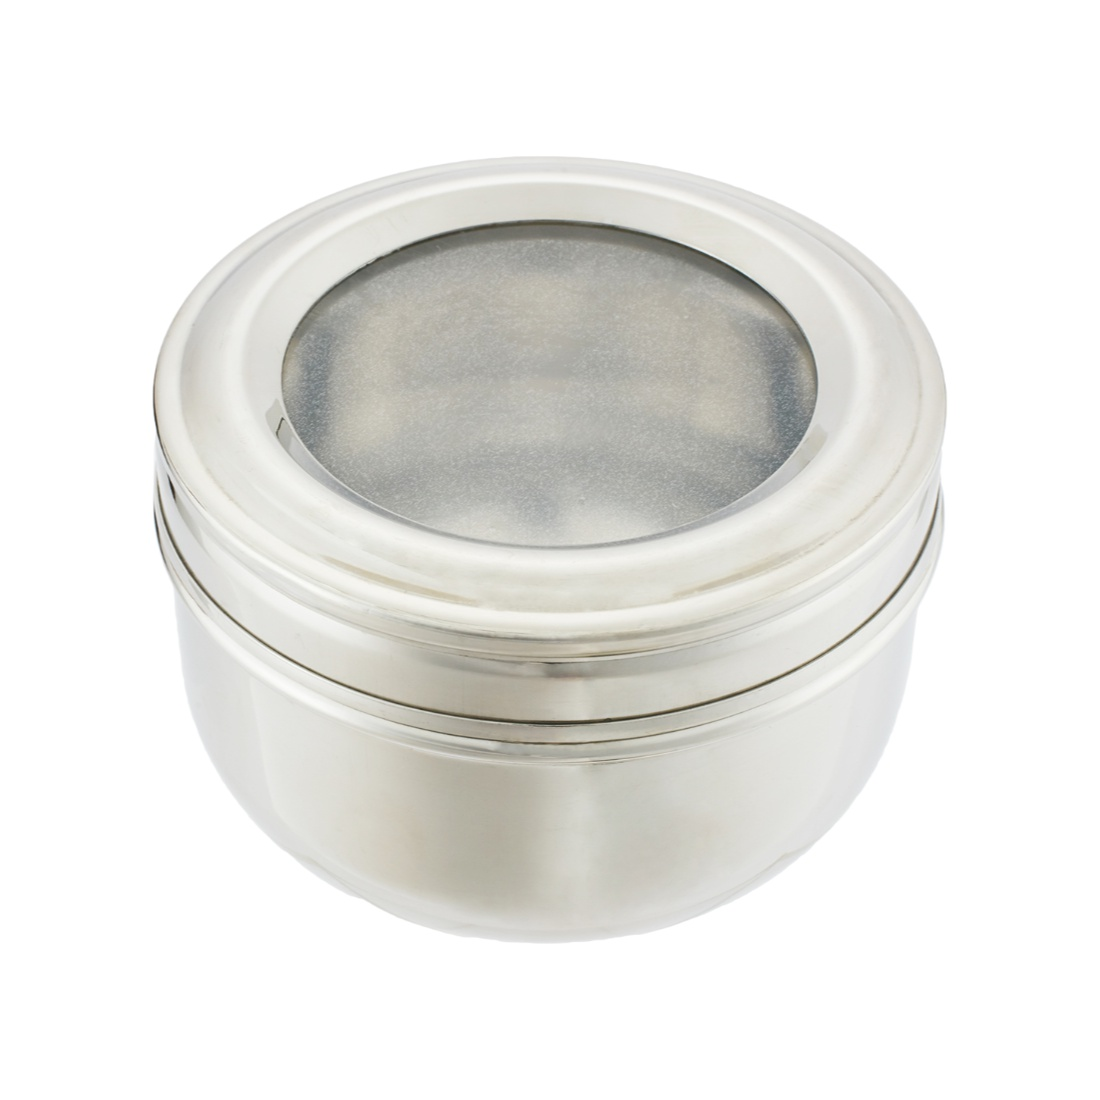 Medium Deep Puri Dabba Stainless steel Containers in Steel Colour by Living Essence